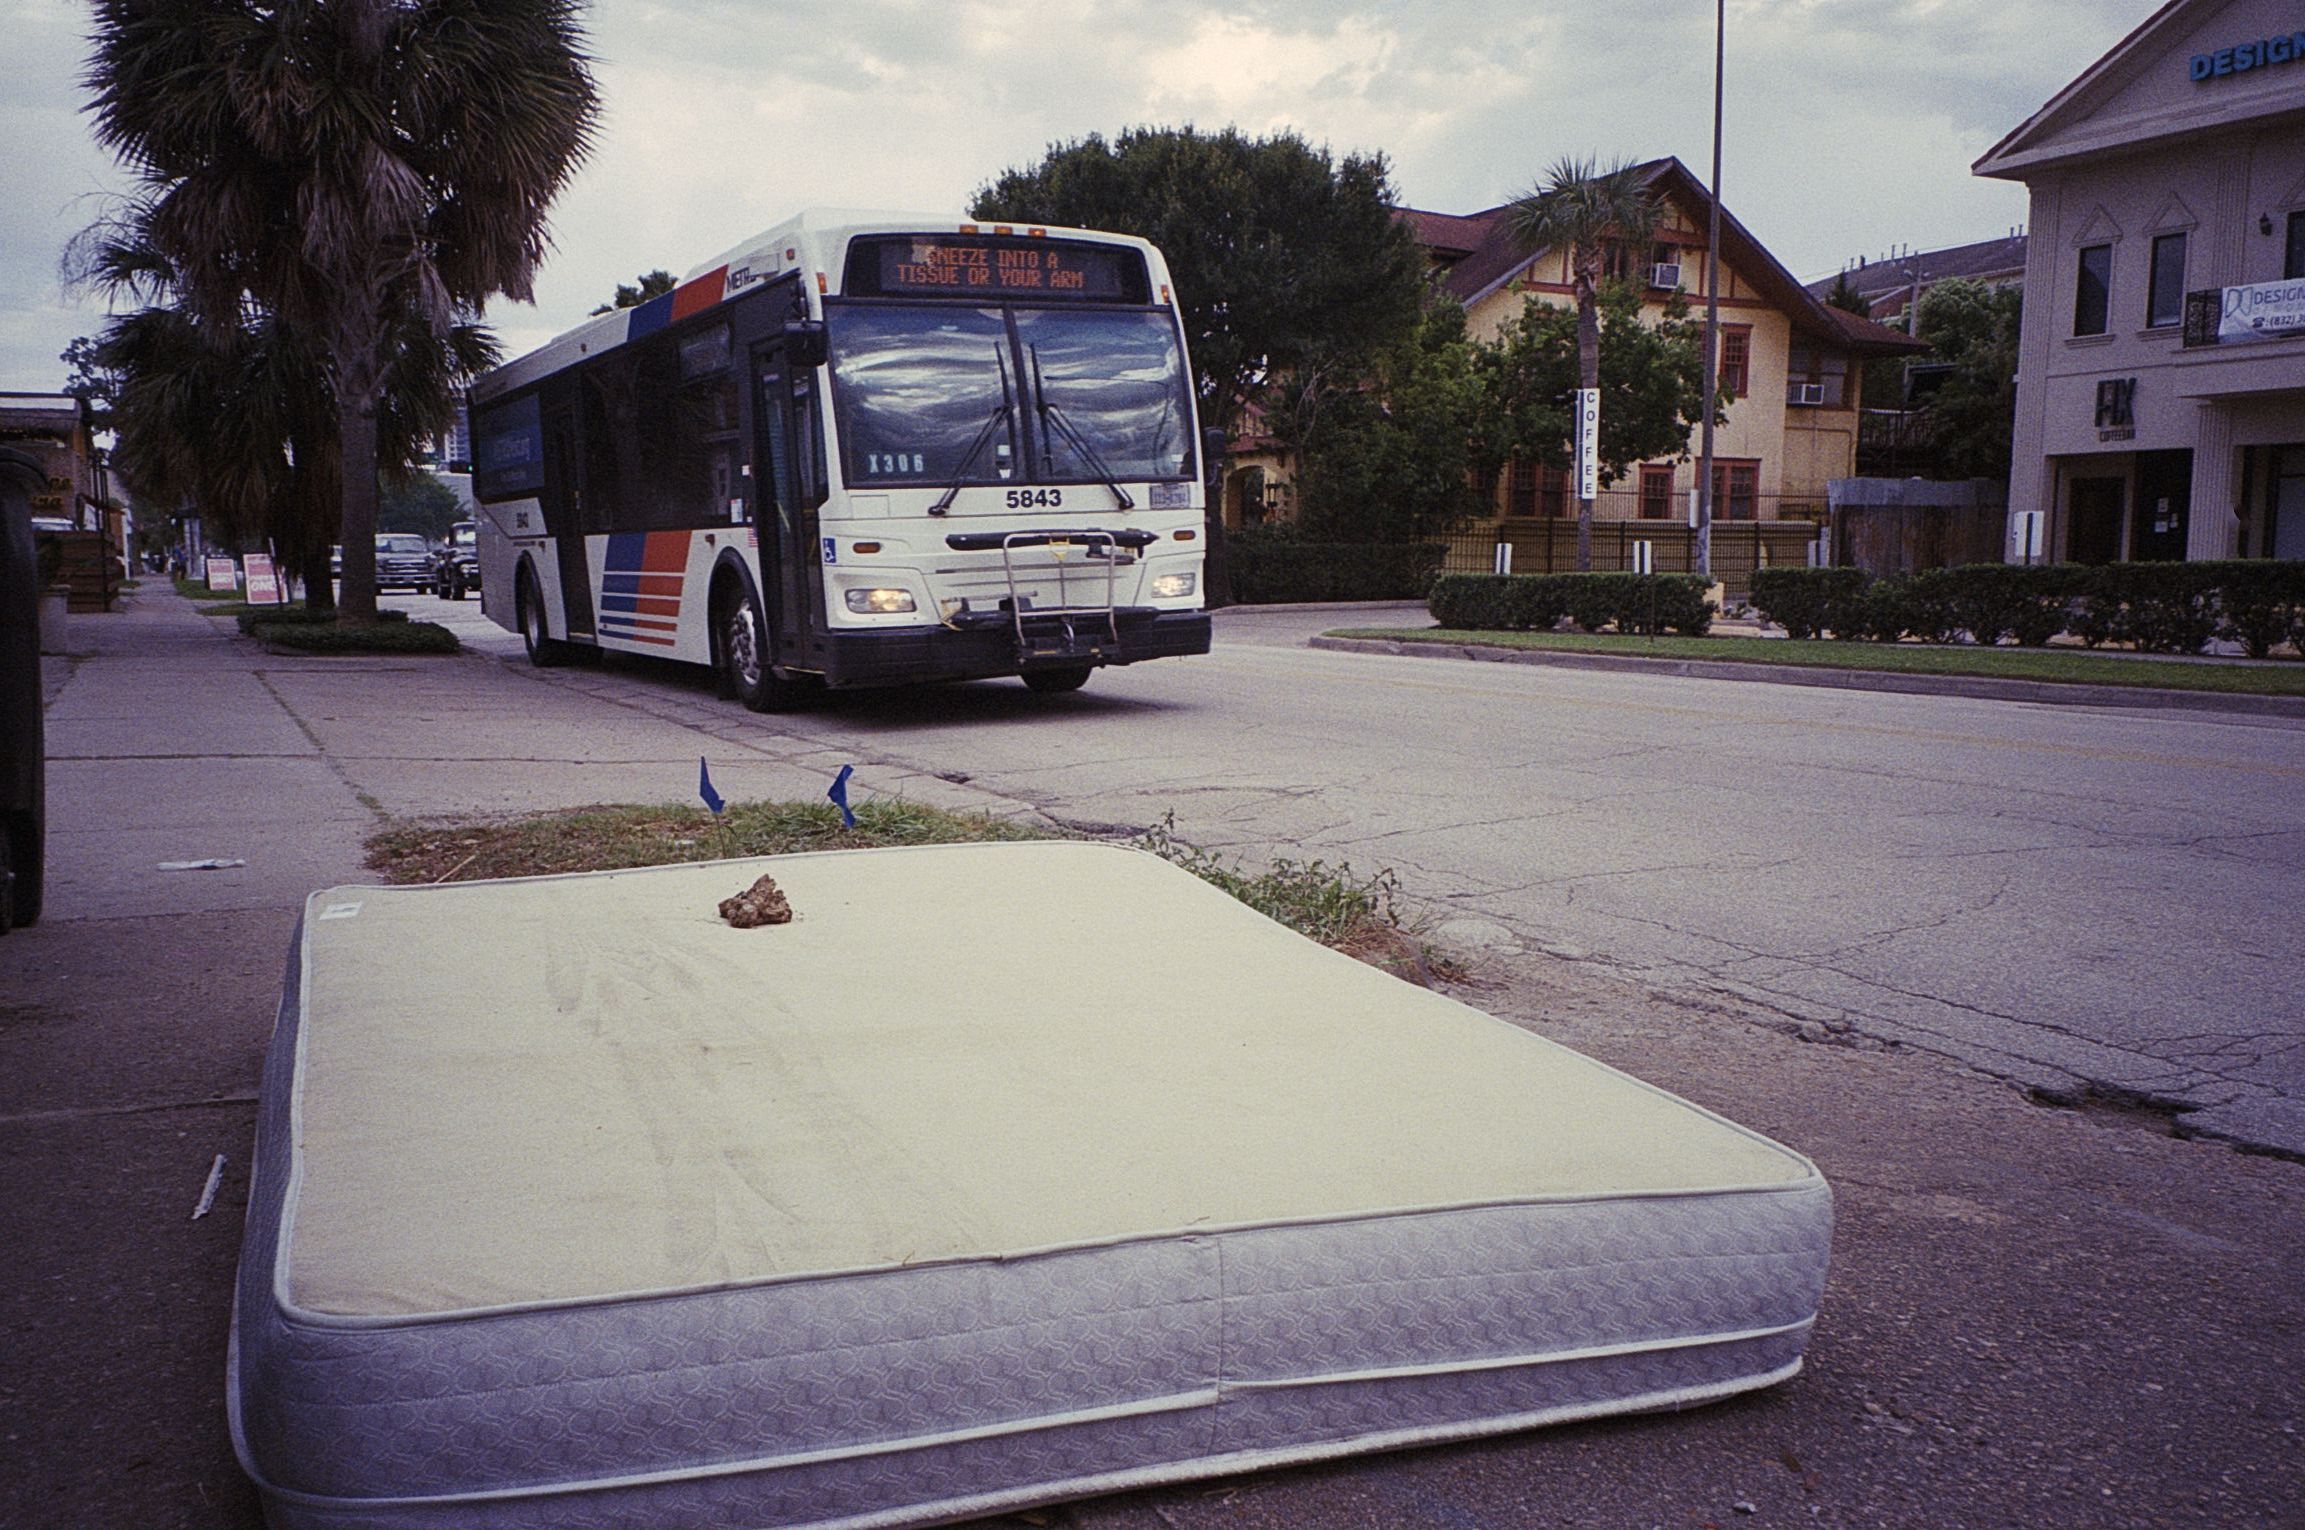 cody-swann-photo-319-mattress-bus